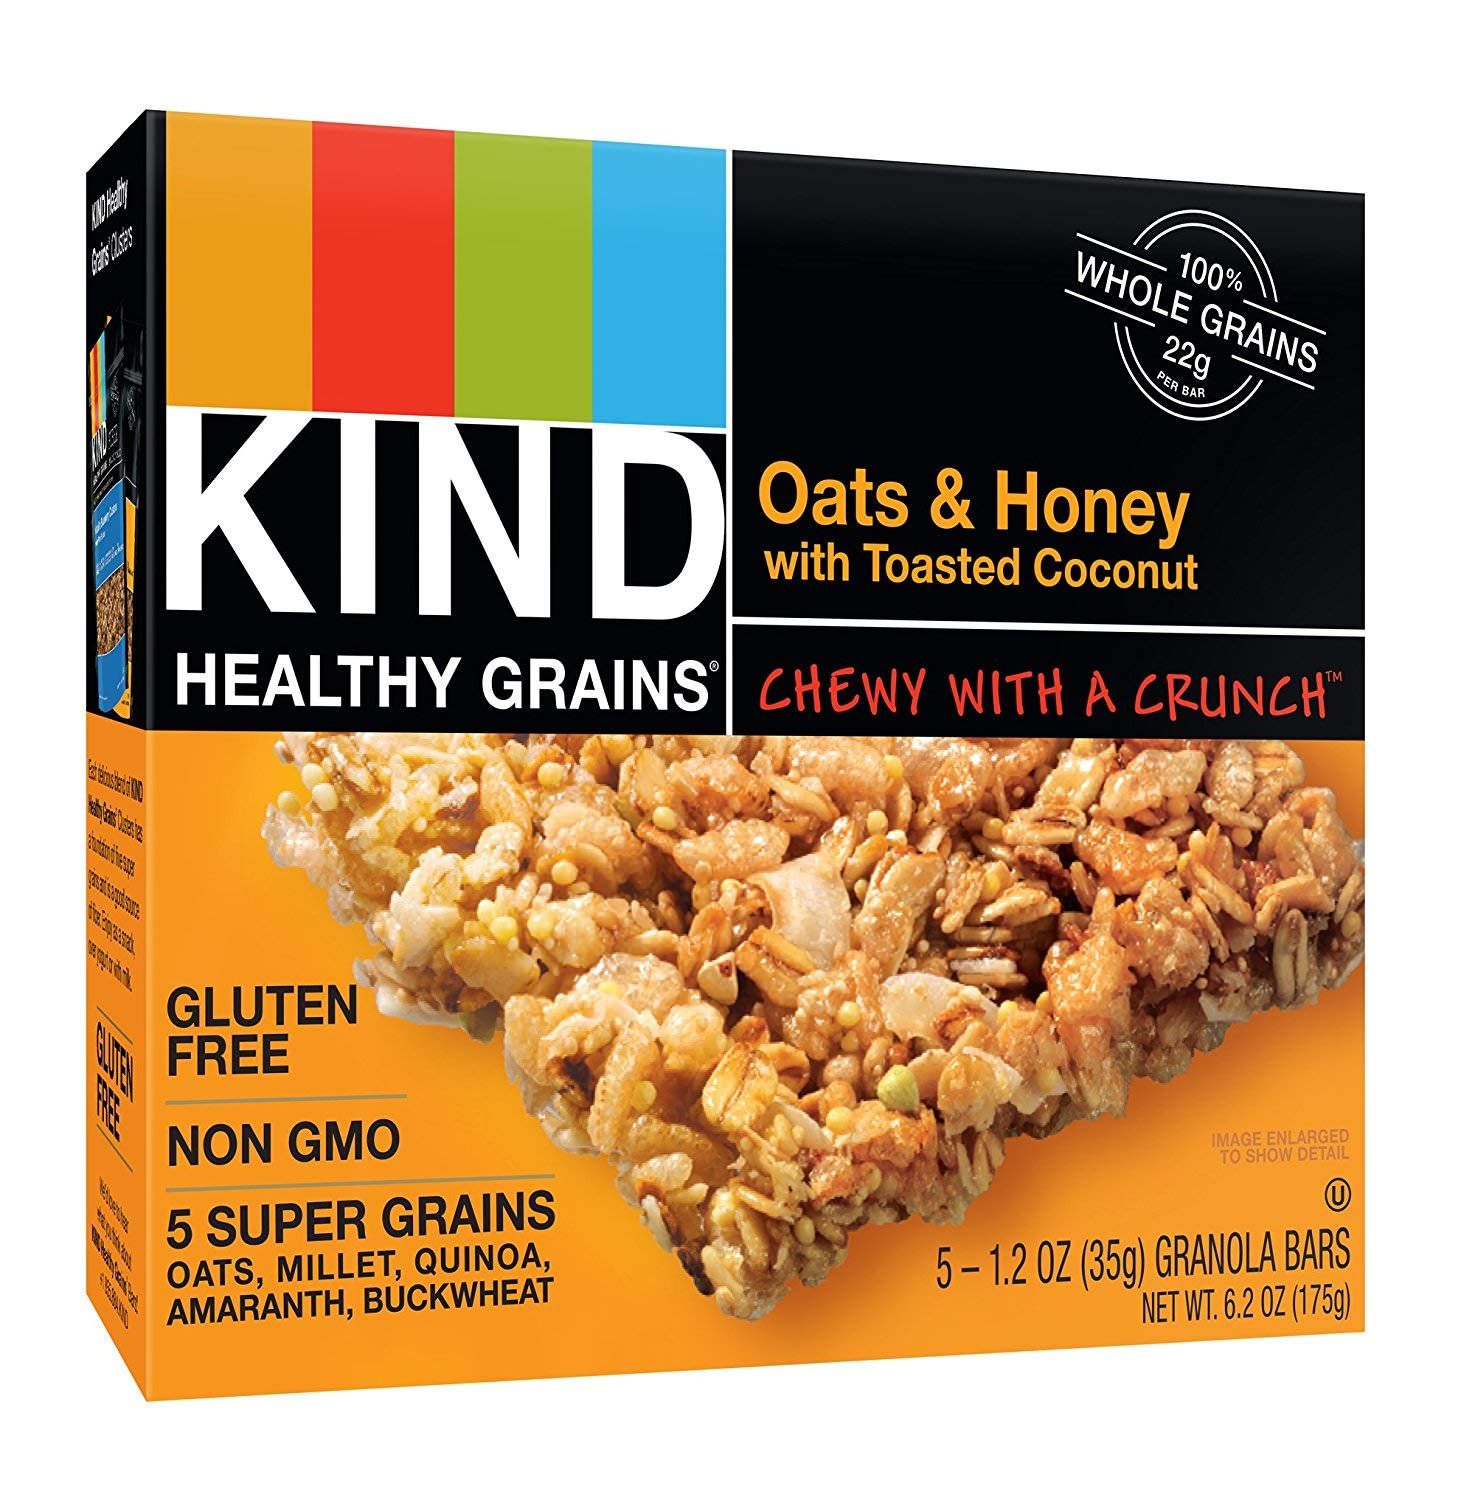 KIND Healthy Grains Bars, Oats & Honey with Toasted Coconut, Non GMO, Gluten Free, 1.2oz, 5 Count (6 Boxes)